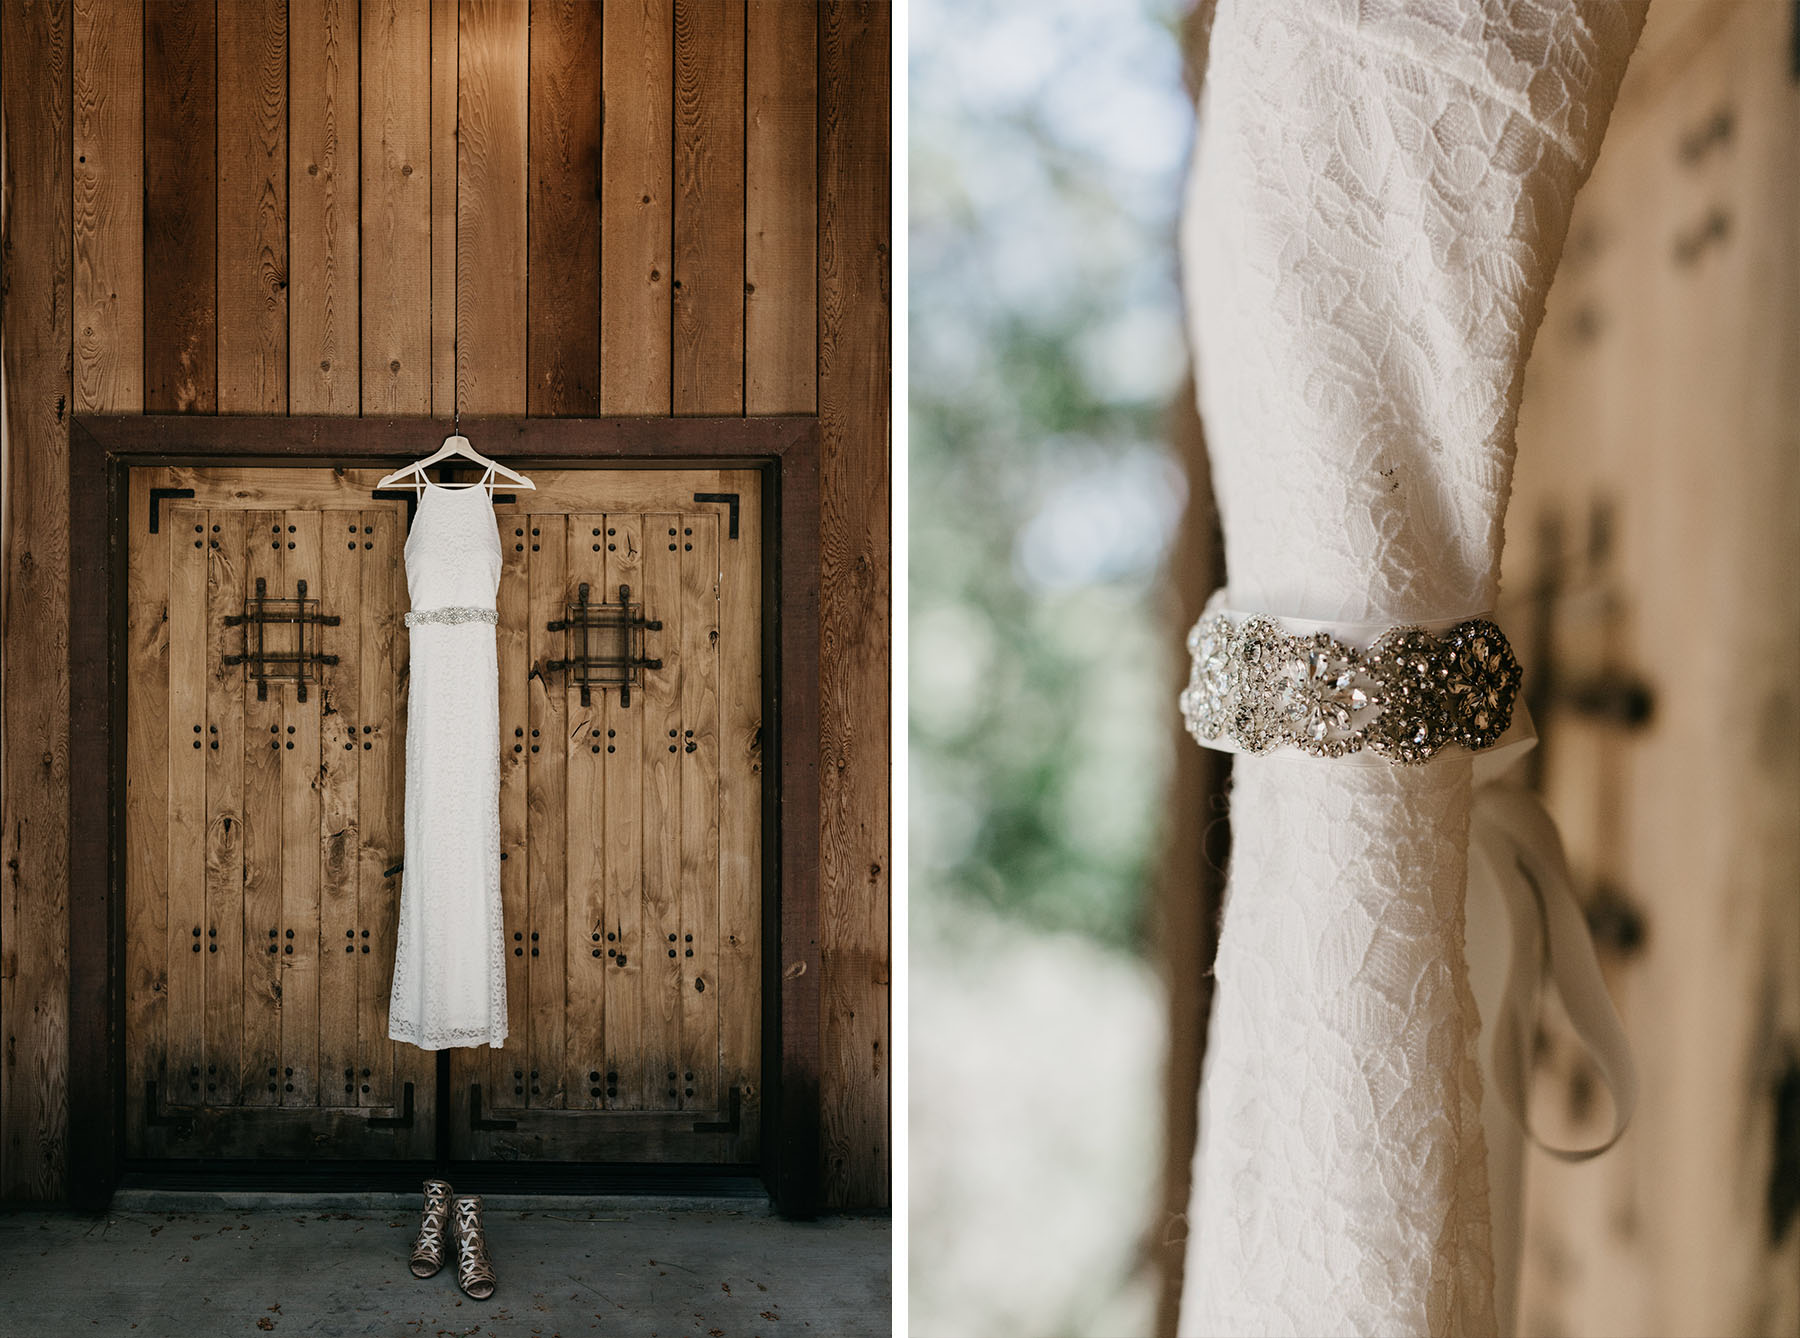 Paso-Robles-Wedding-Diana-Lake-Photography-1.jpg